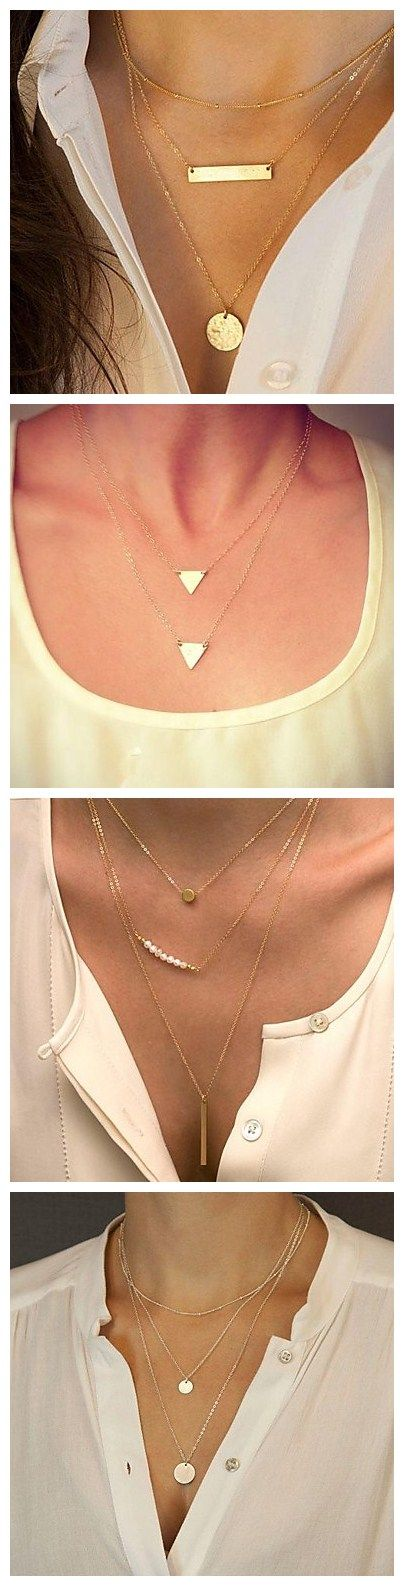 Delicate multilayer necklaces are perfect for your spring wardrobe. Find the one that's right for you!